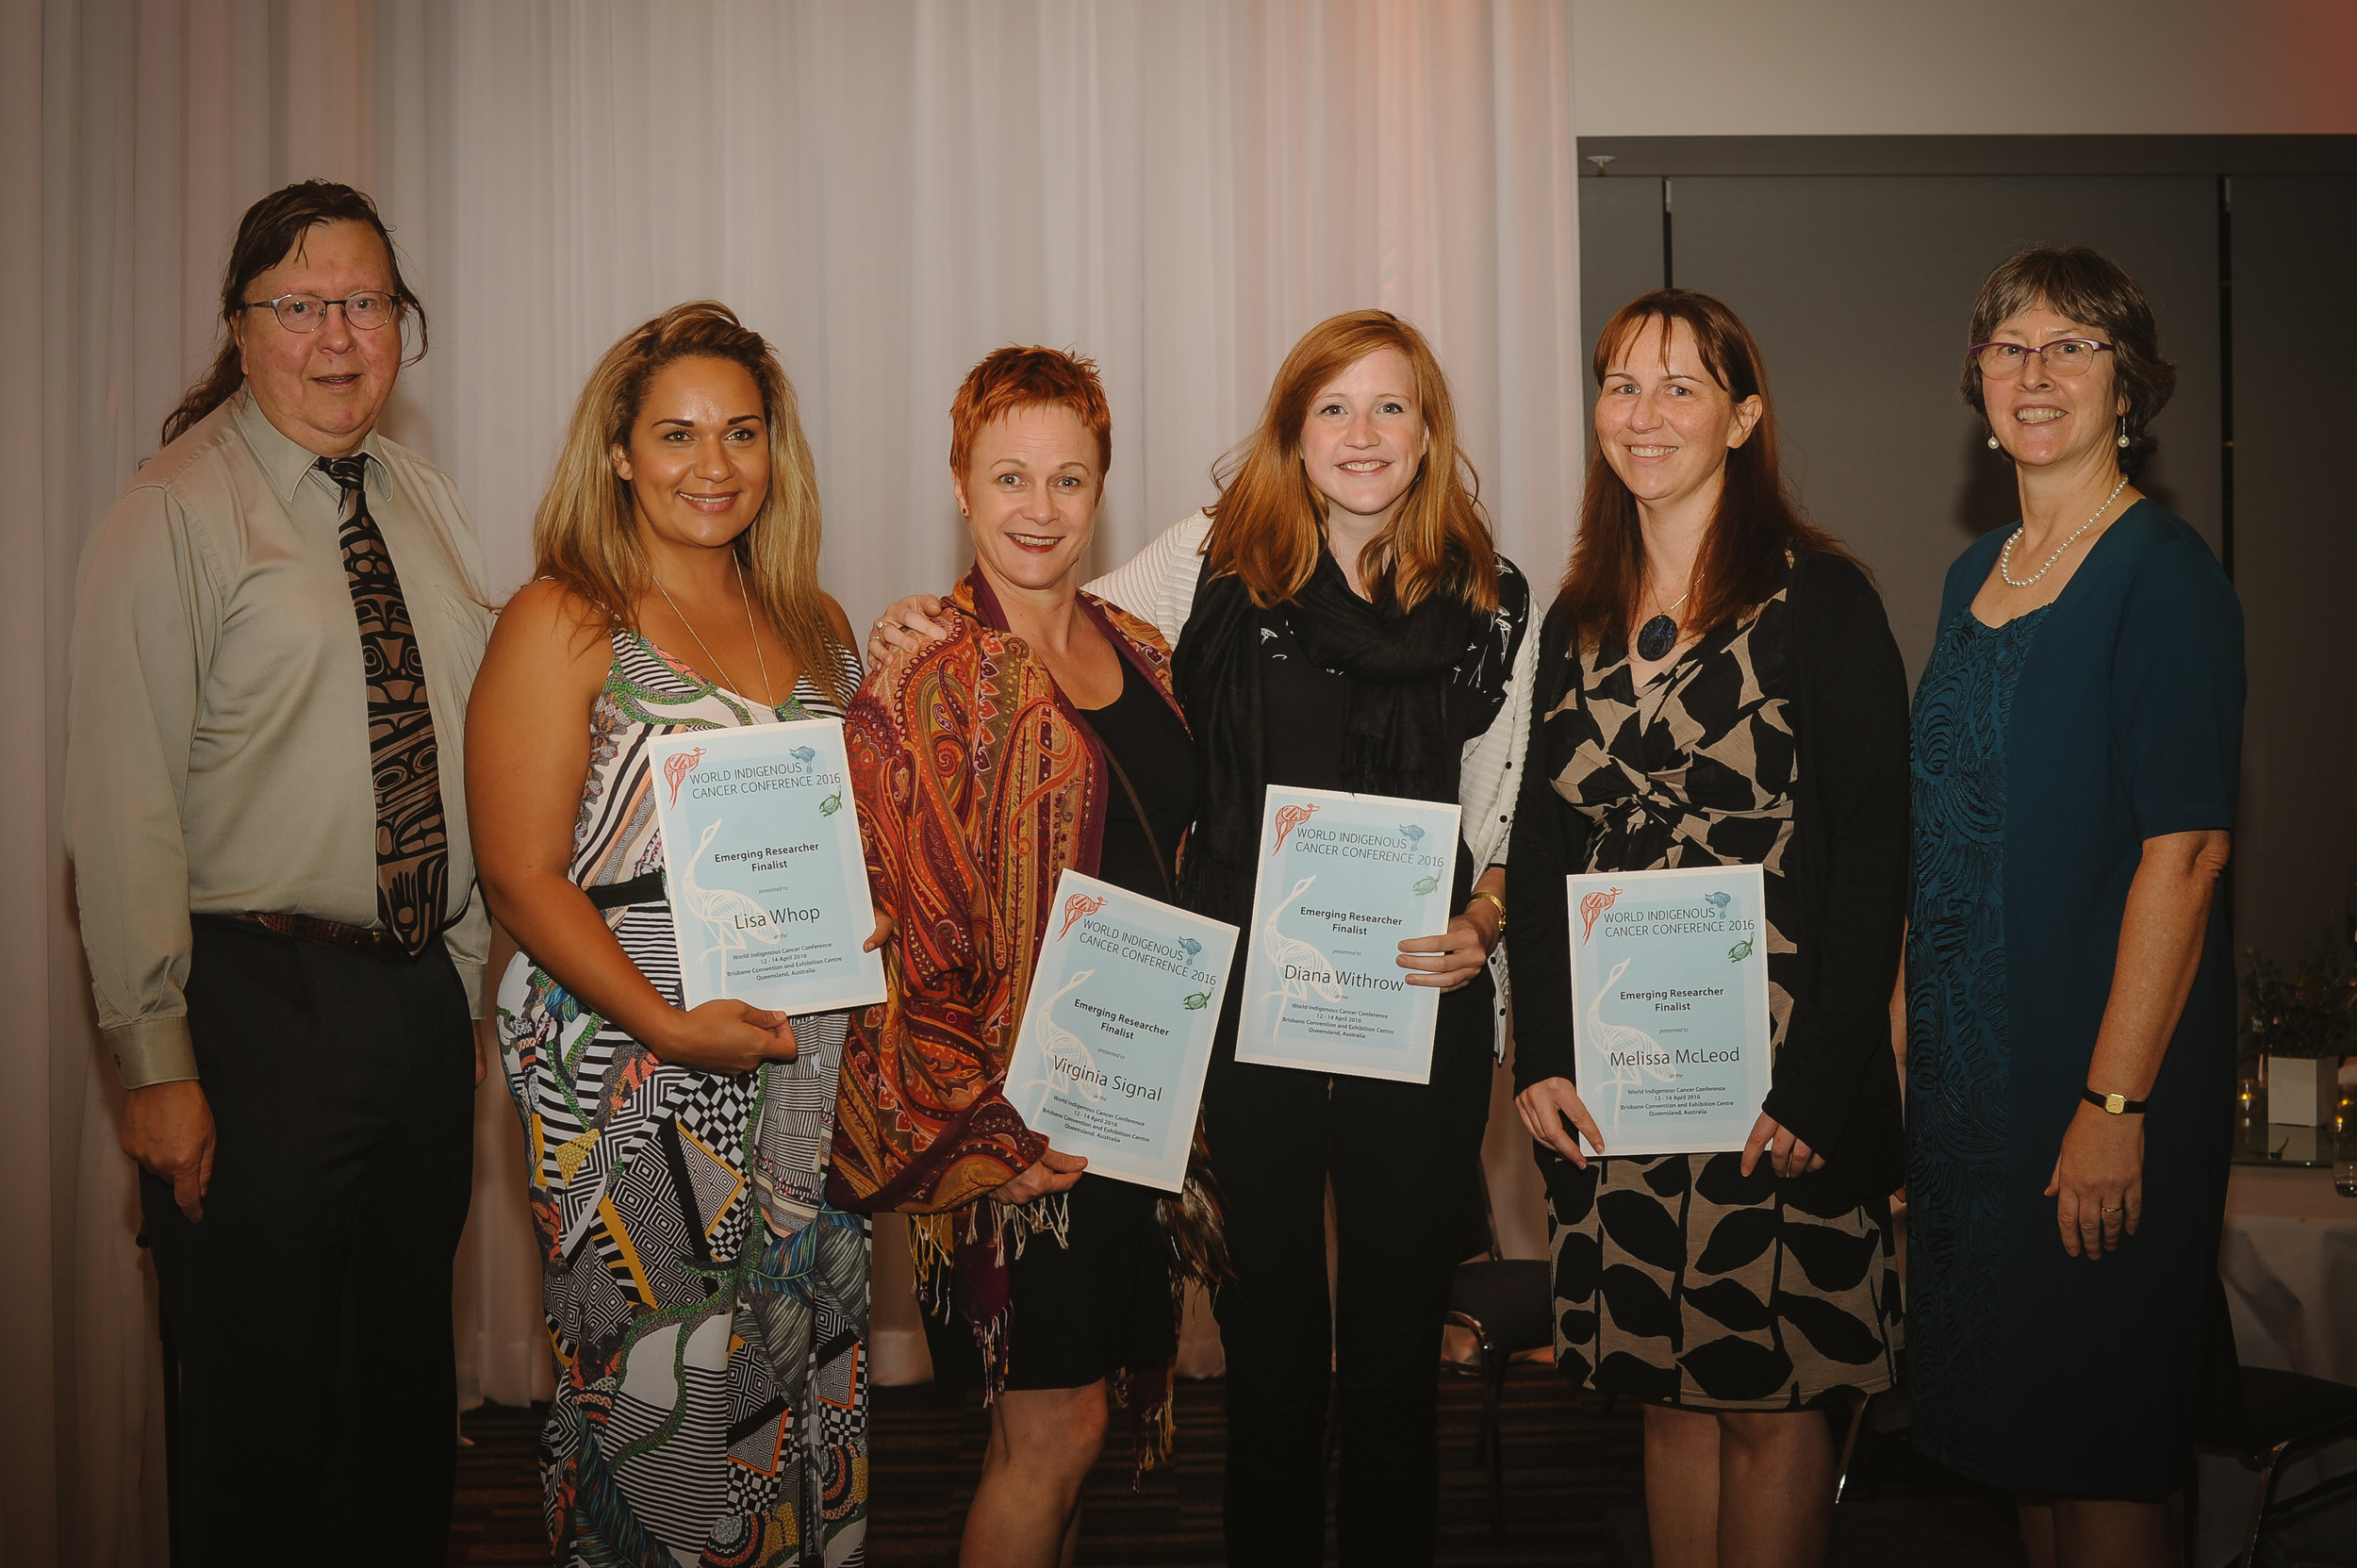 wicc_conference_dinner-38.jpg